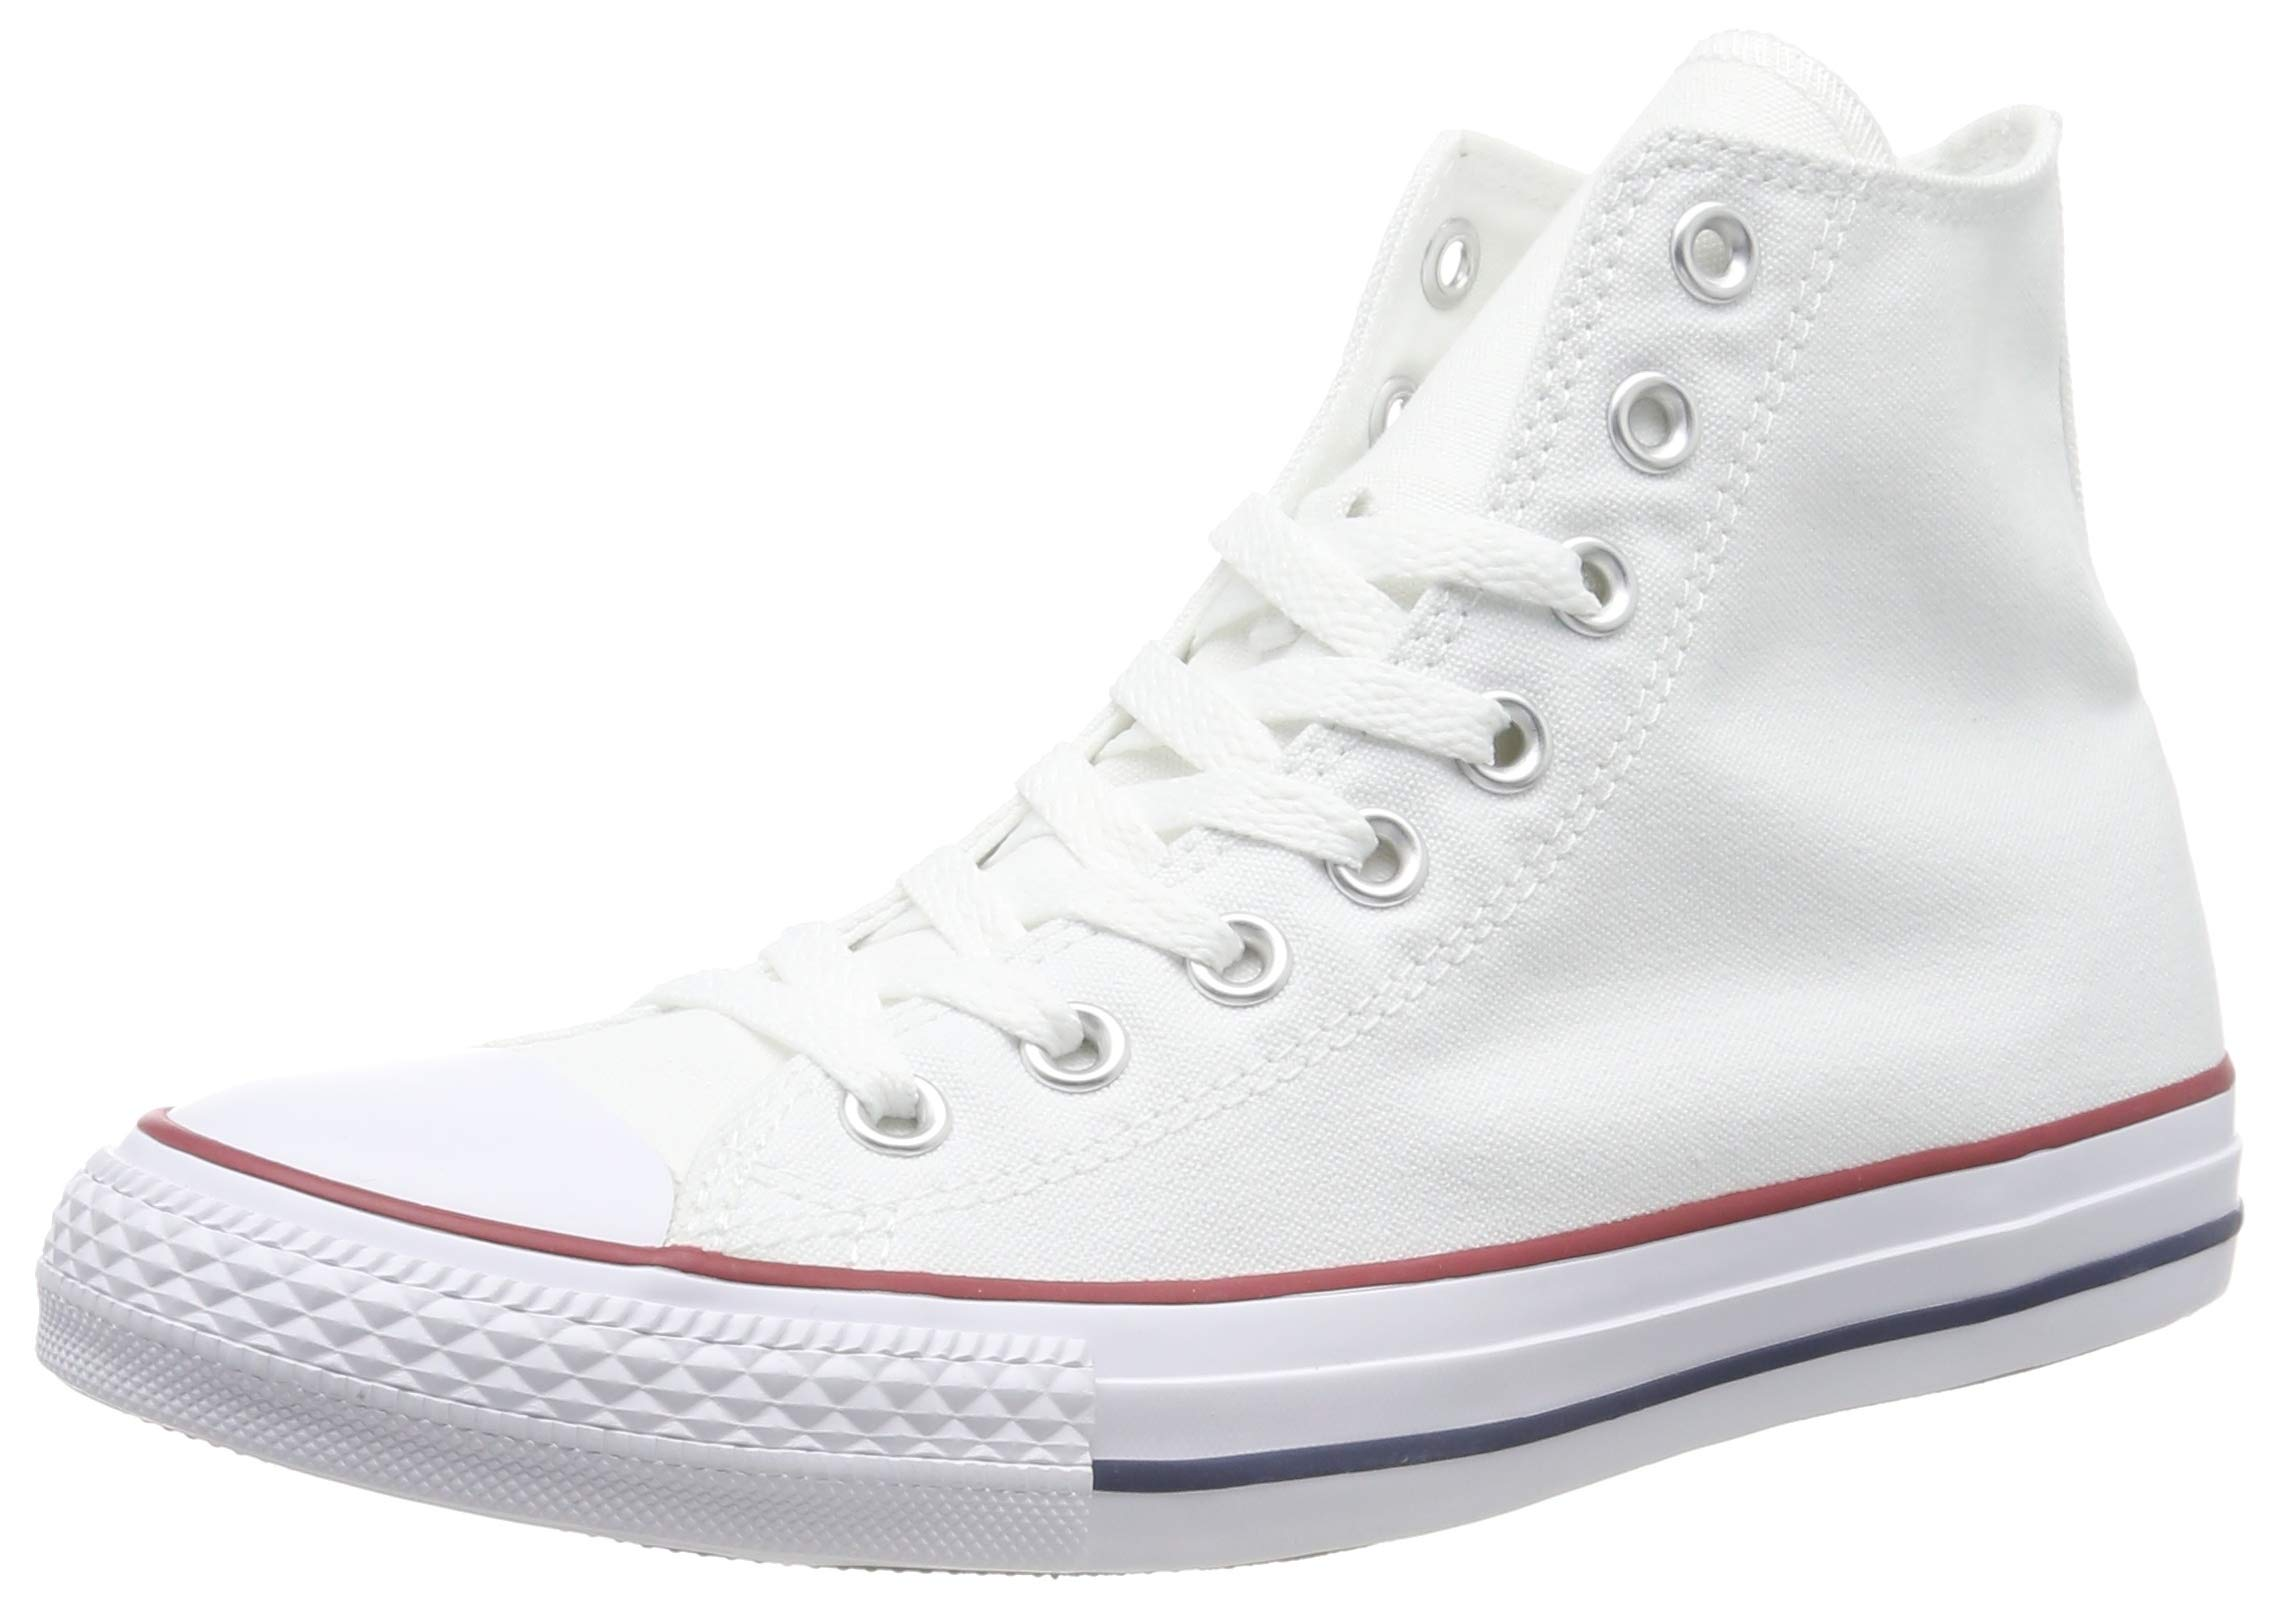 Chuck Taylor All Star Canvas High Top, Optical White, 7.5 by Converse